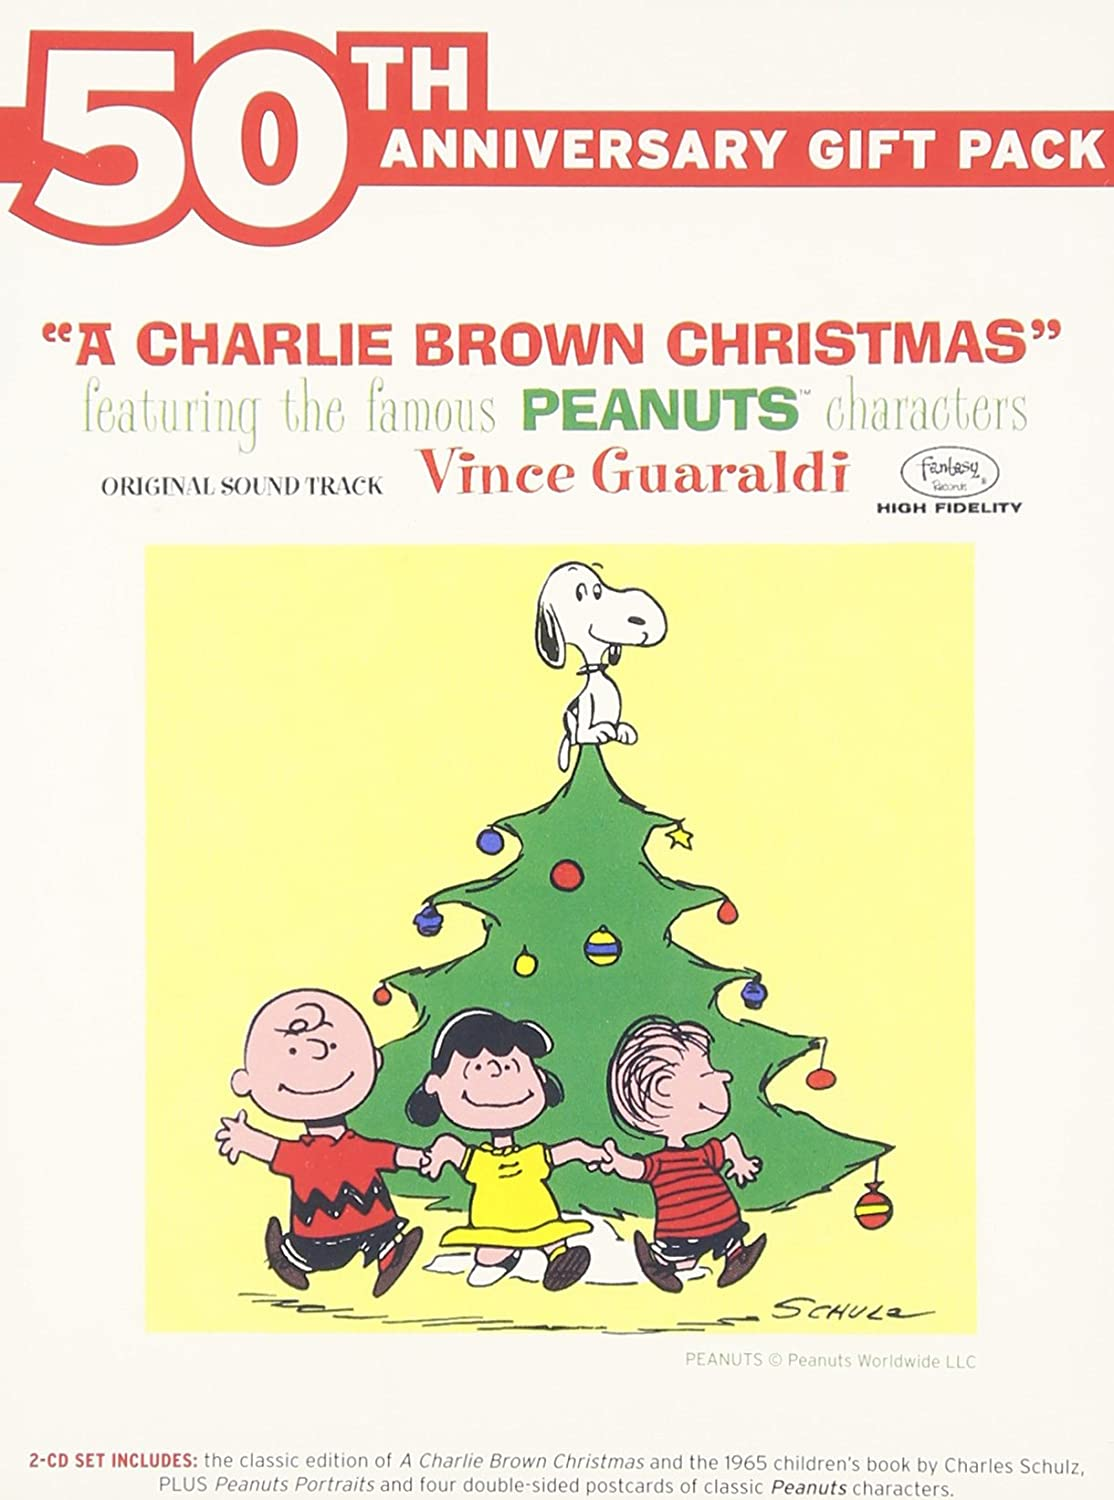 A Charlie Brown Christmas [2 CD][50th Anniversary Gift Pack]